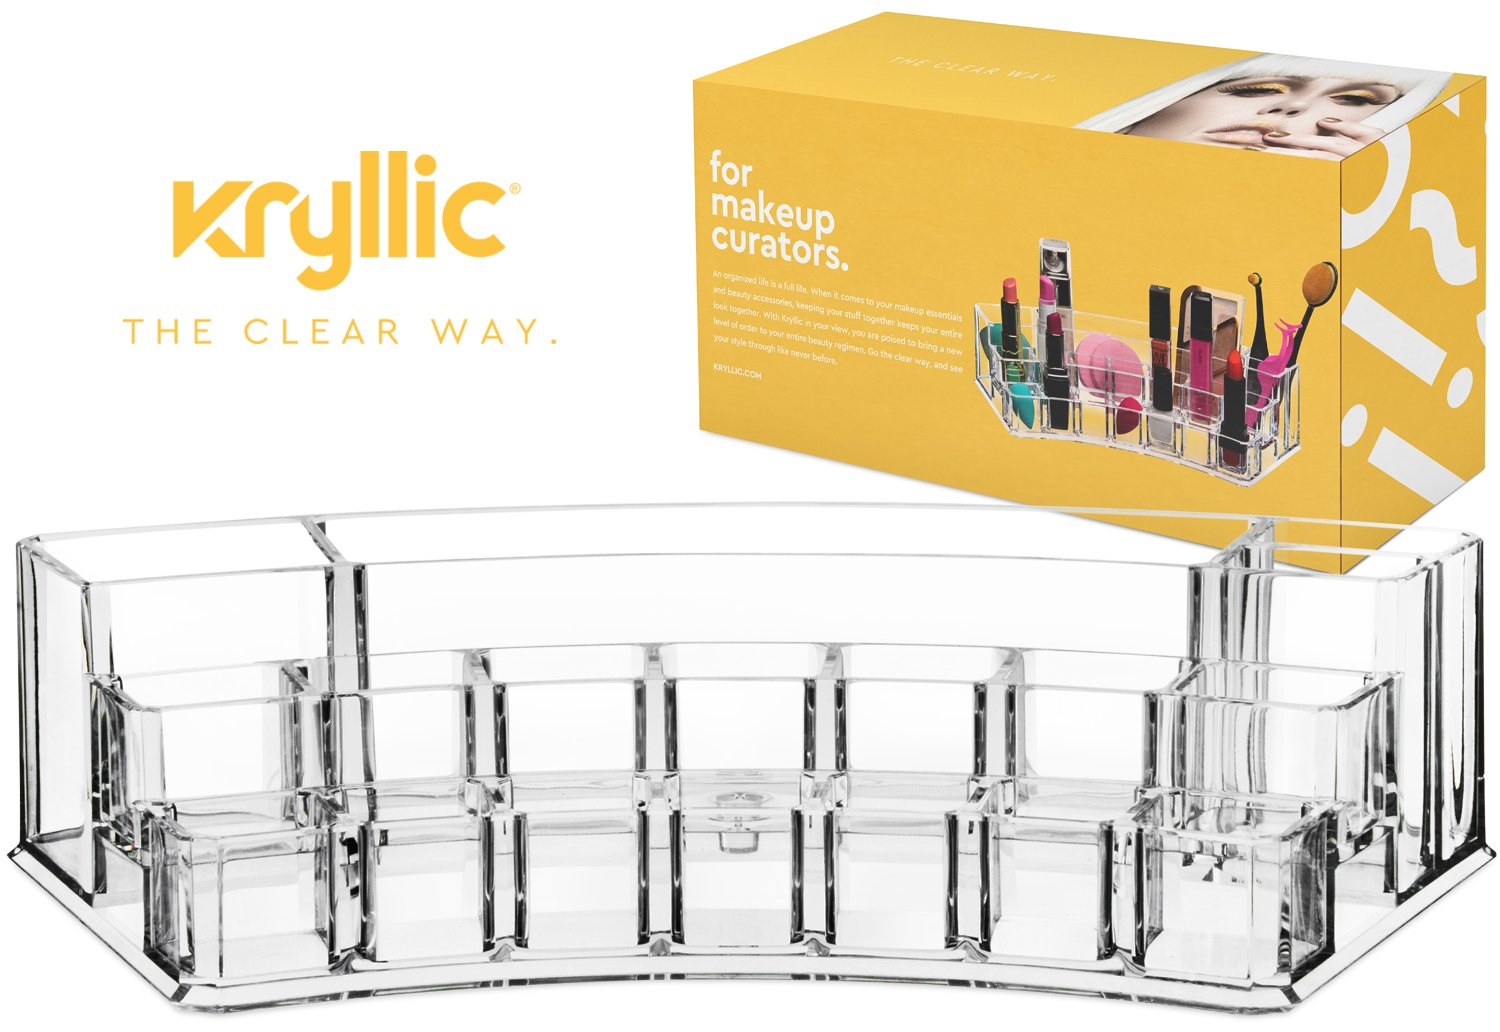 Acrylic Lipstick Brush Display Holder - Beautifully Shaped Multi Section Makeup Organizer Fits Lipstick Nail Polish Brushes & Bottles Made Thick & Strong With the Highest Quality Acrylic Material